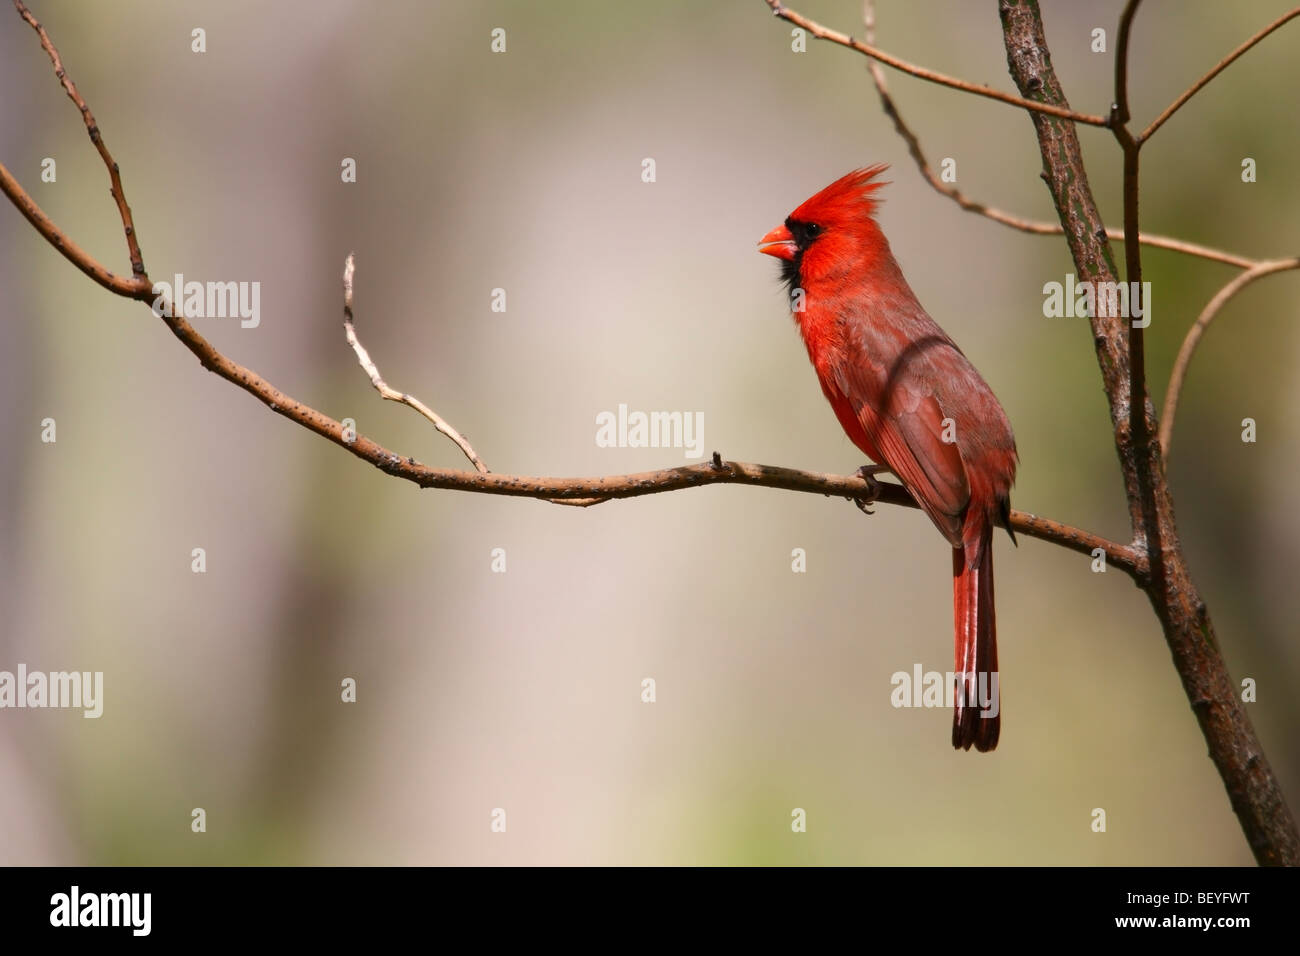 Northern Cardinal (Cardinalis cardinalis cardinalis), male singing on an open branch. - Stock Image